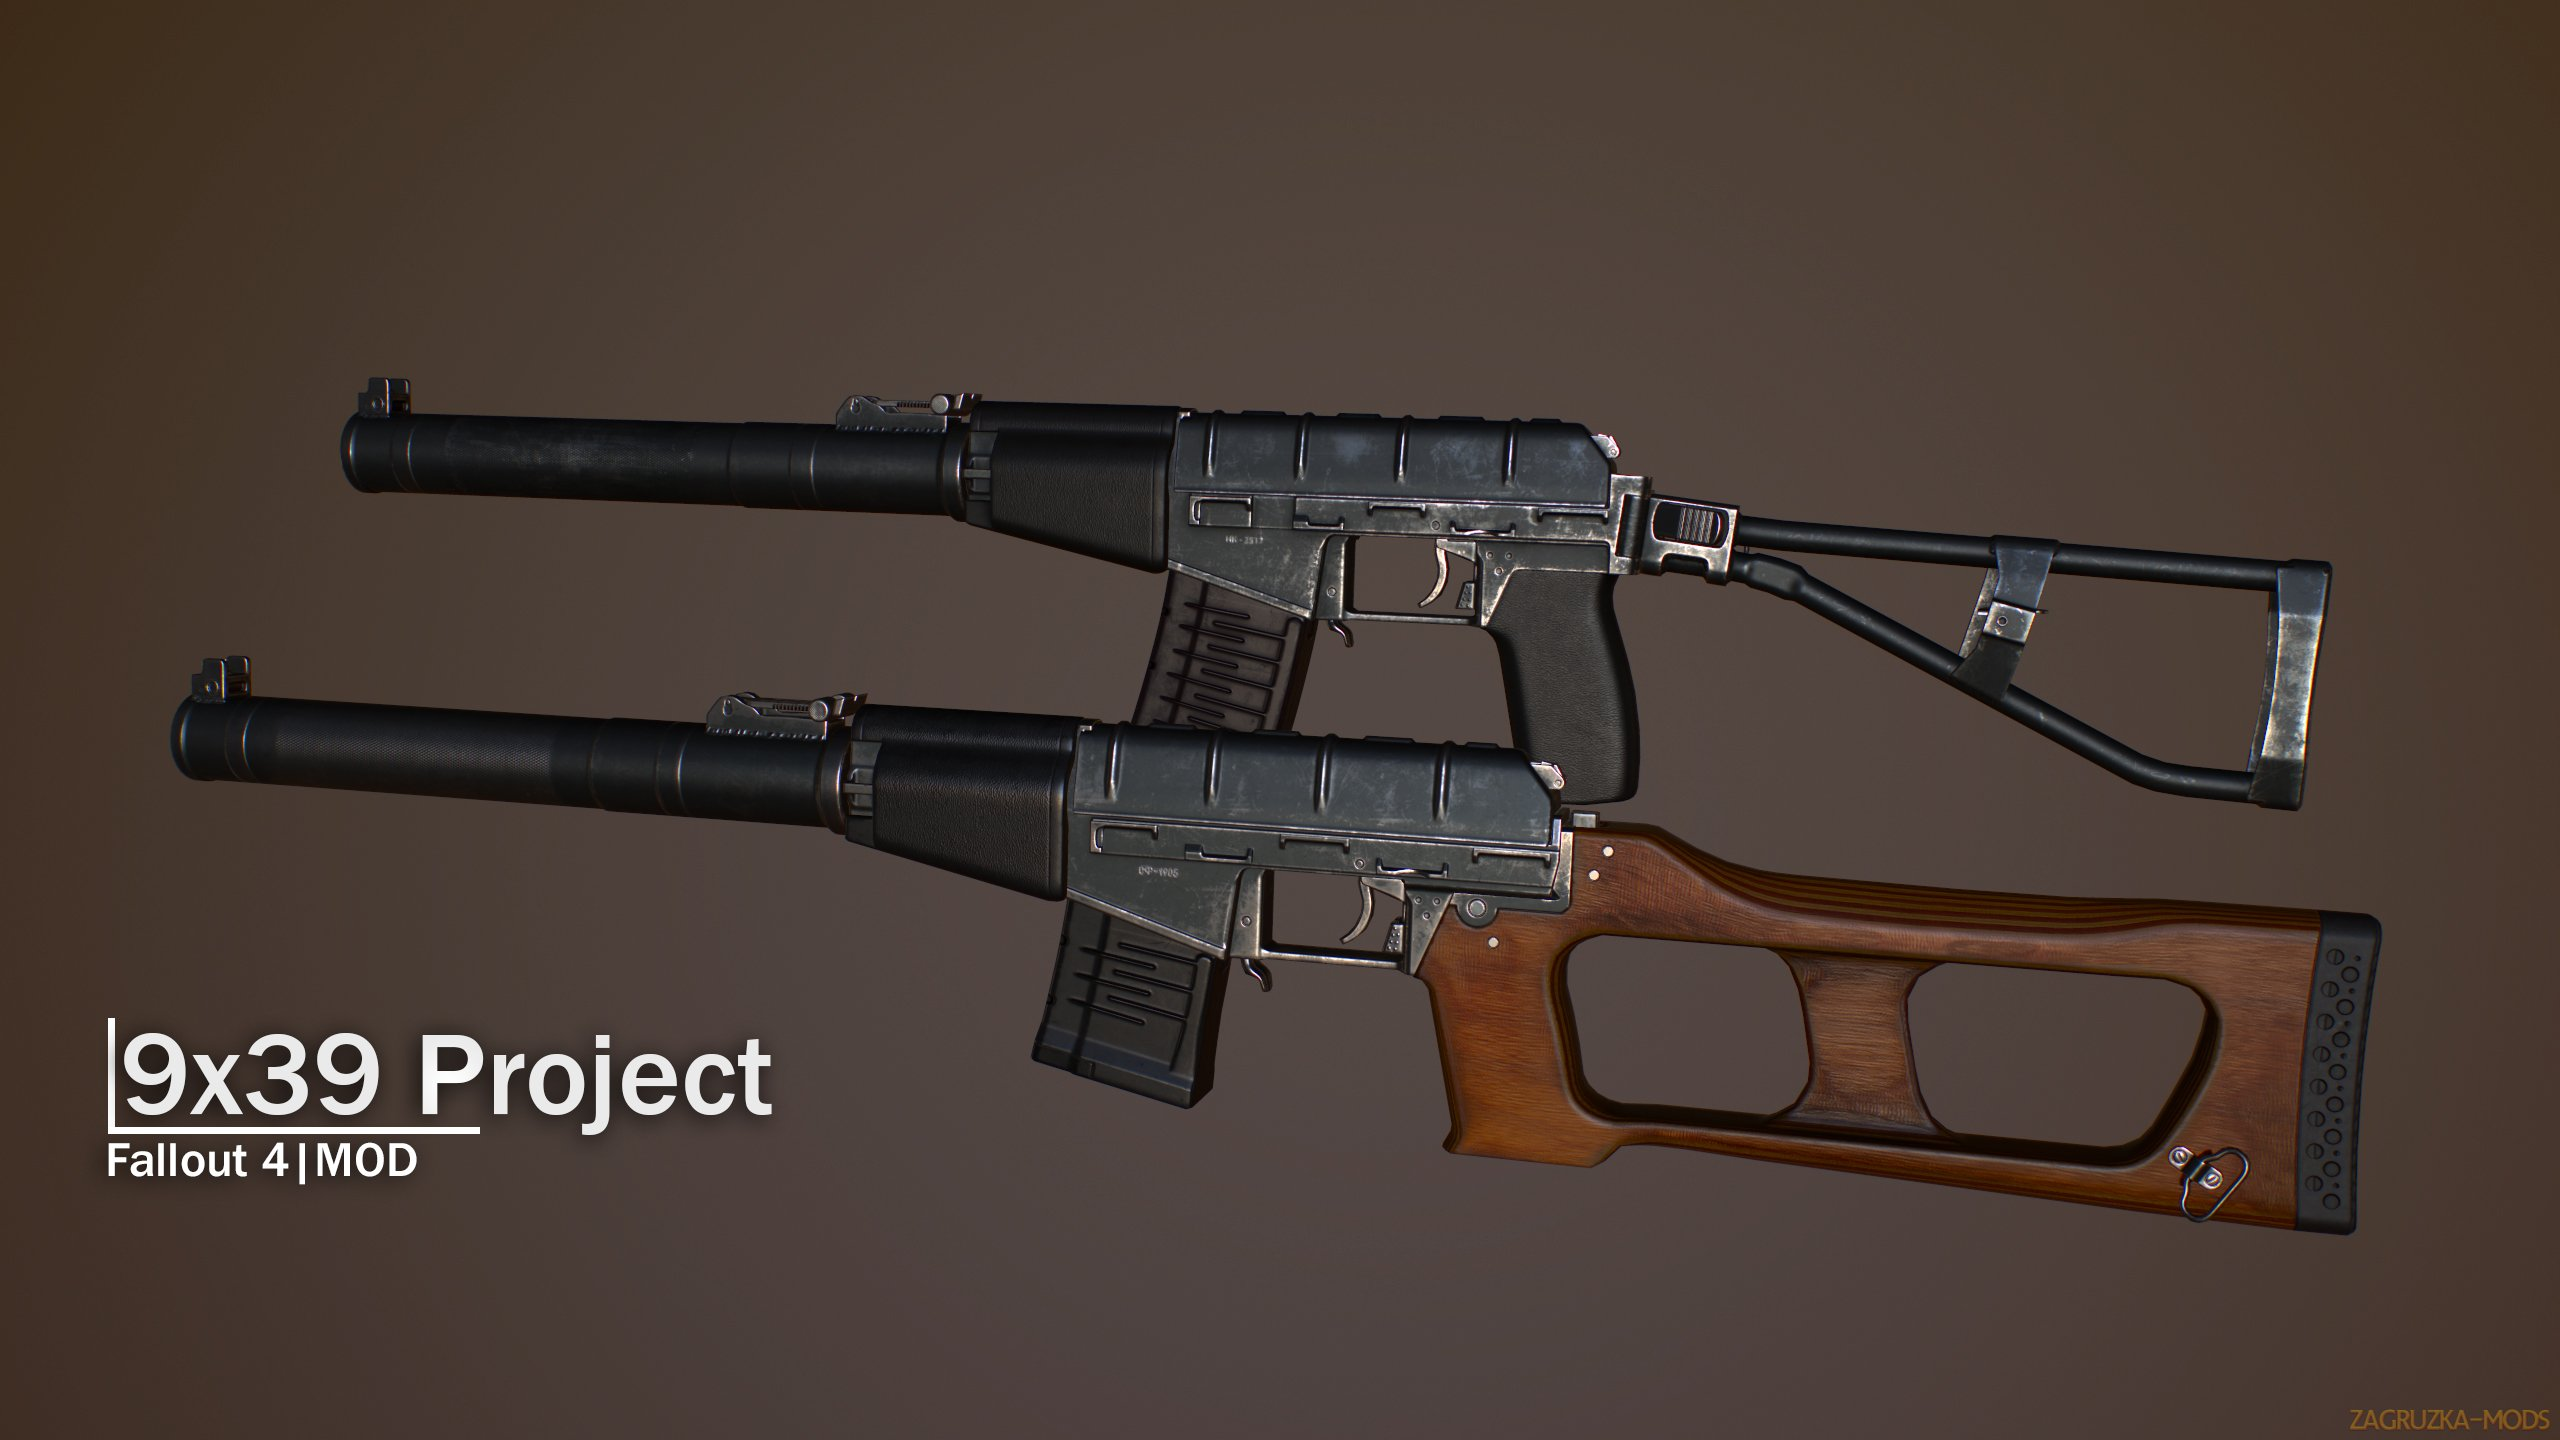 Project 9x39 Gun v1.5 for Fallout 4